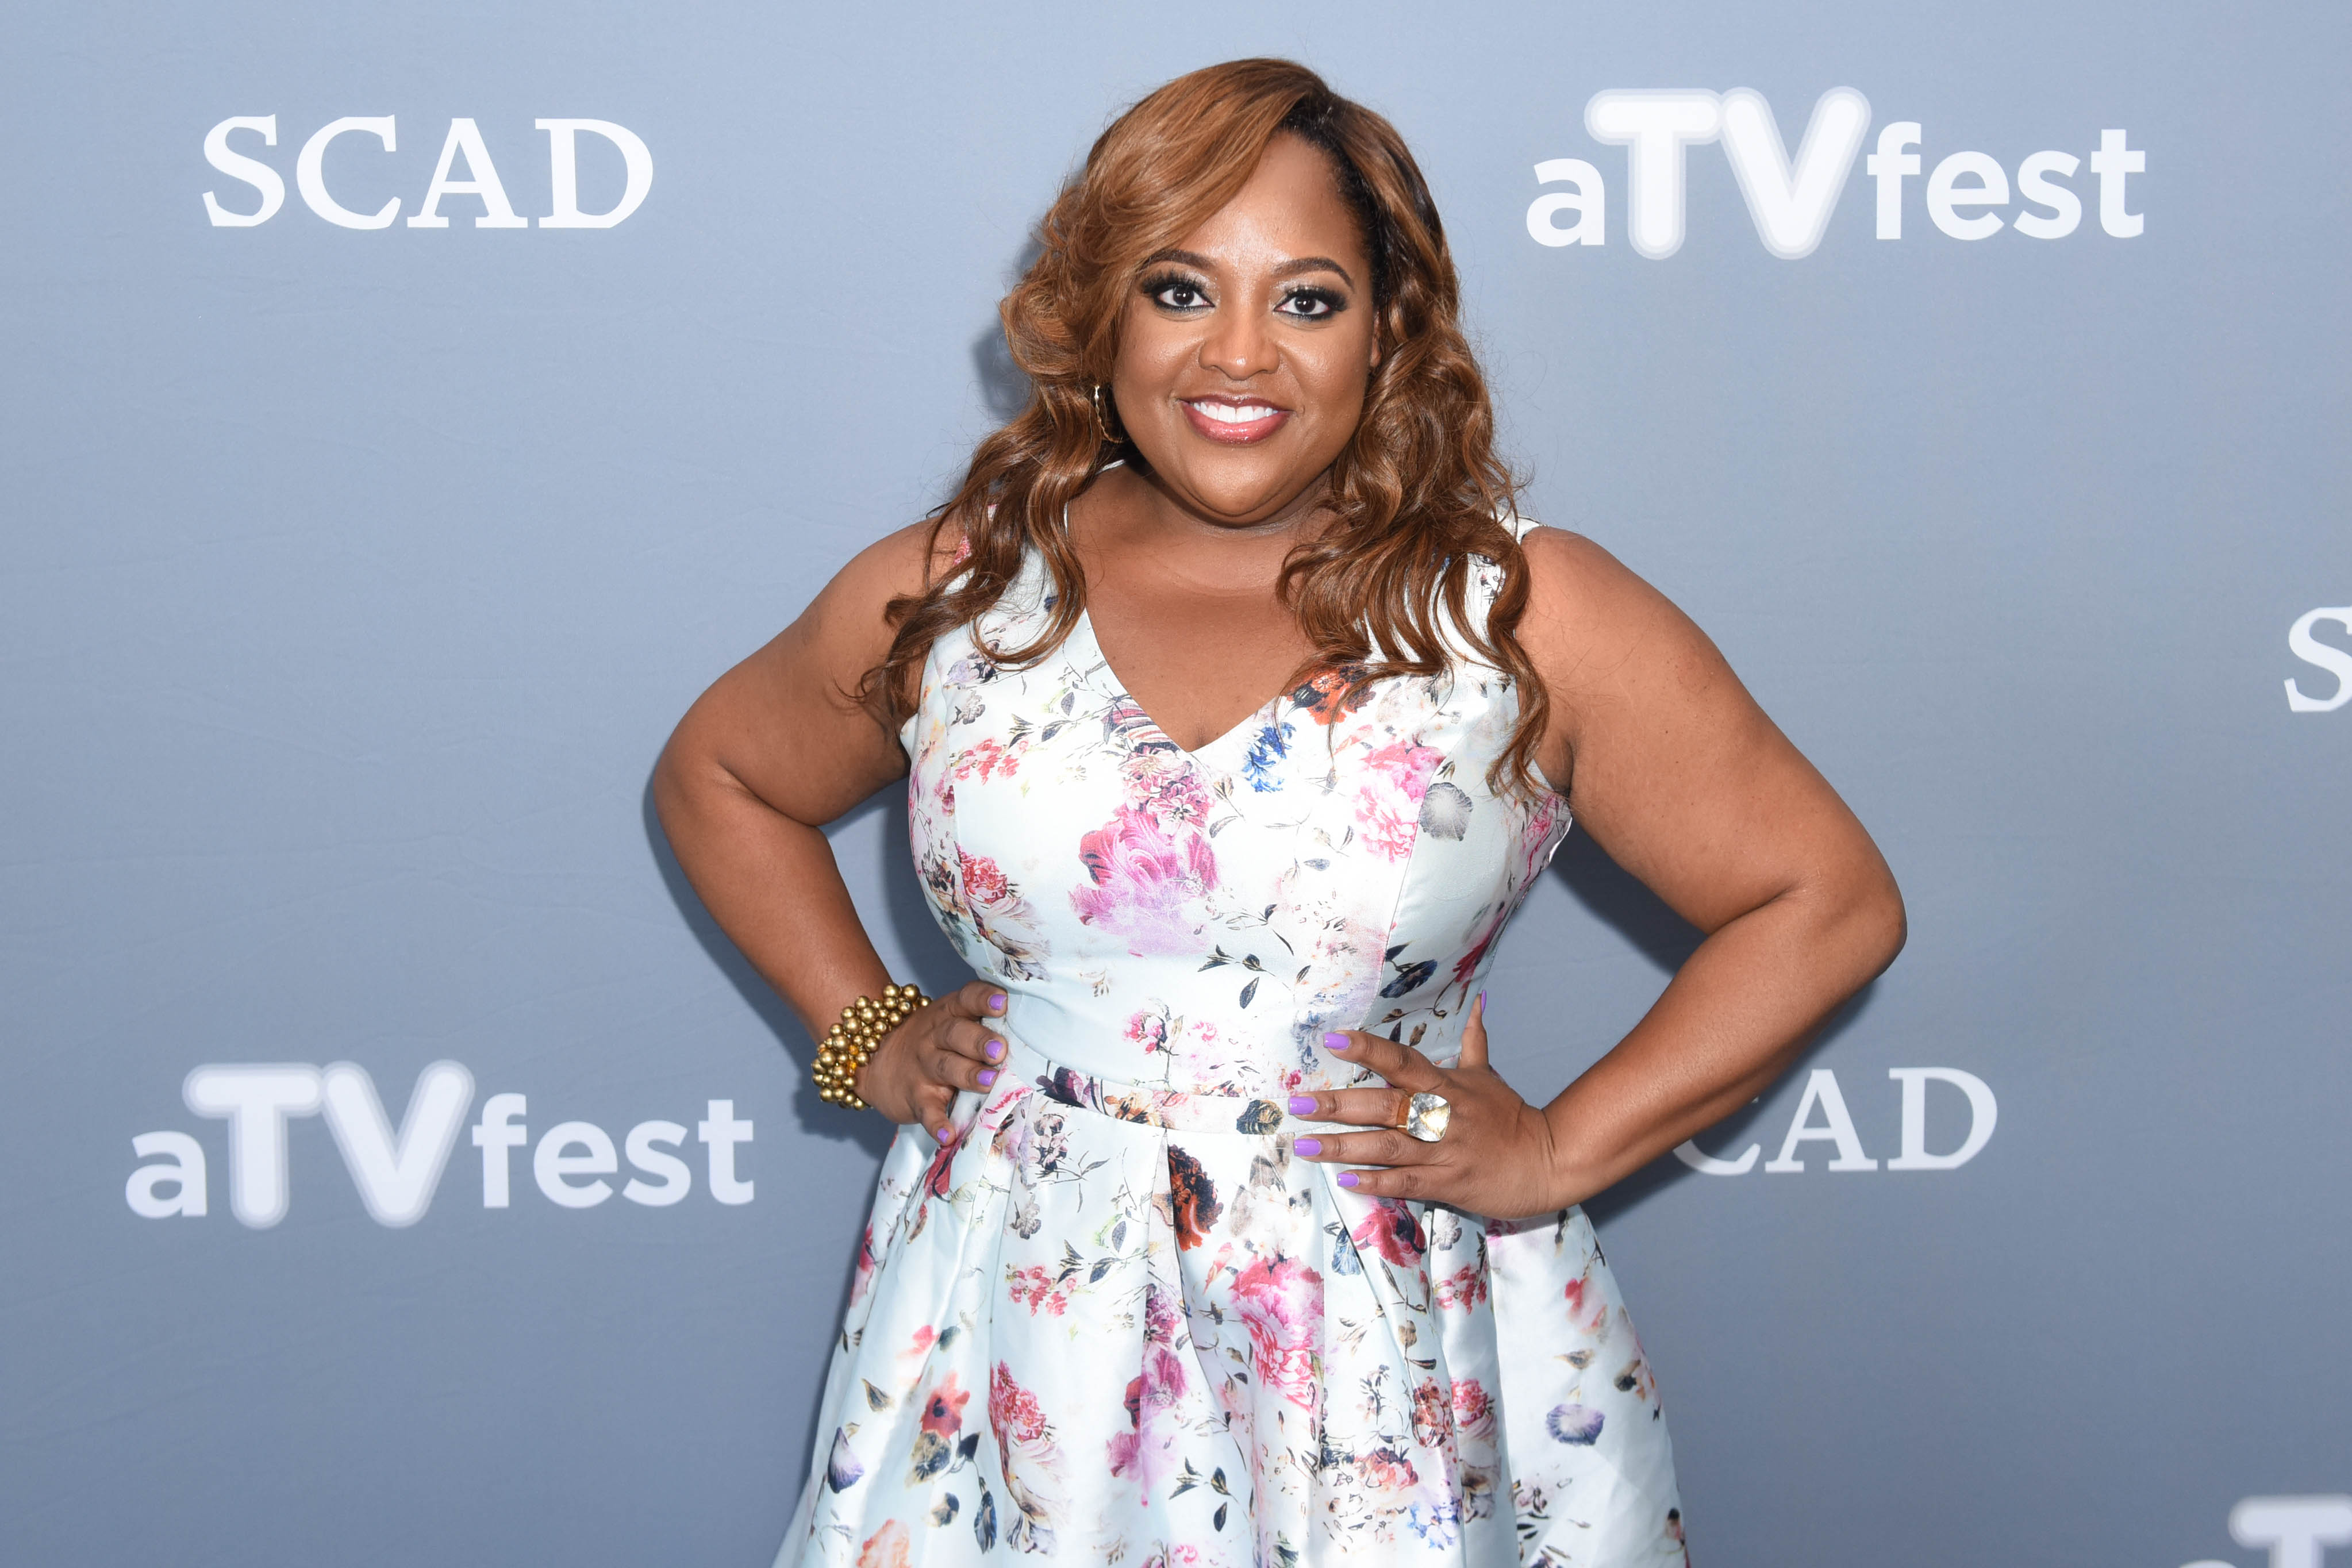 Sherri Shepherd at a promotional event for Trial & Error at aTVfest 2017 presented by SCAD on February 3, 2017. | Photo: Getty Images